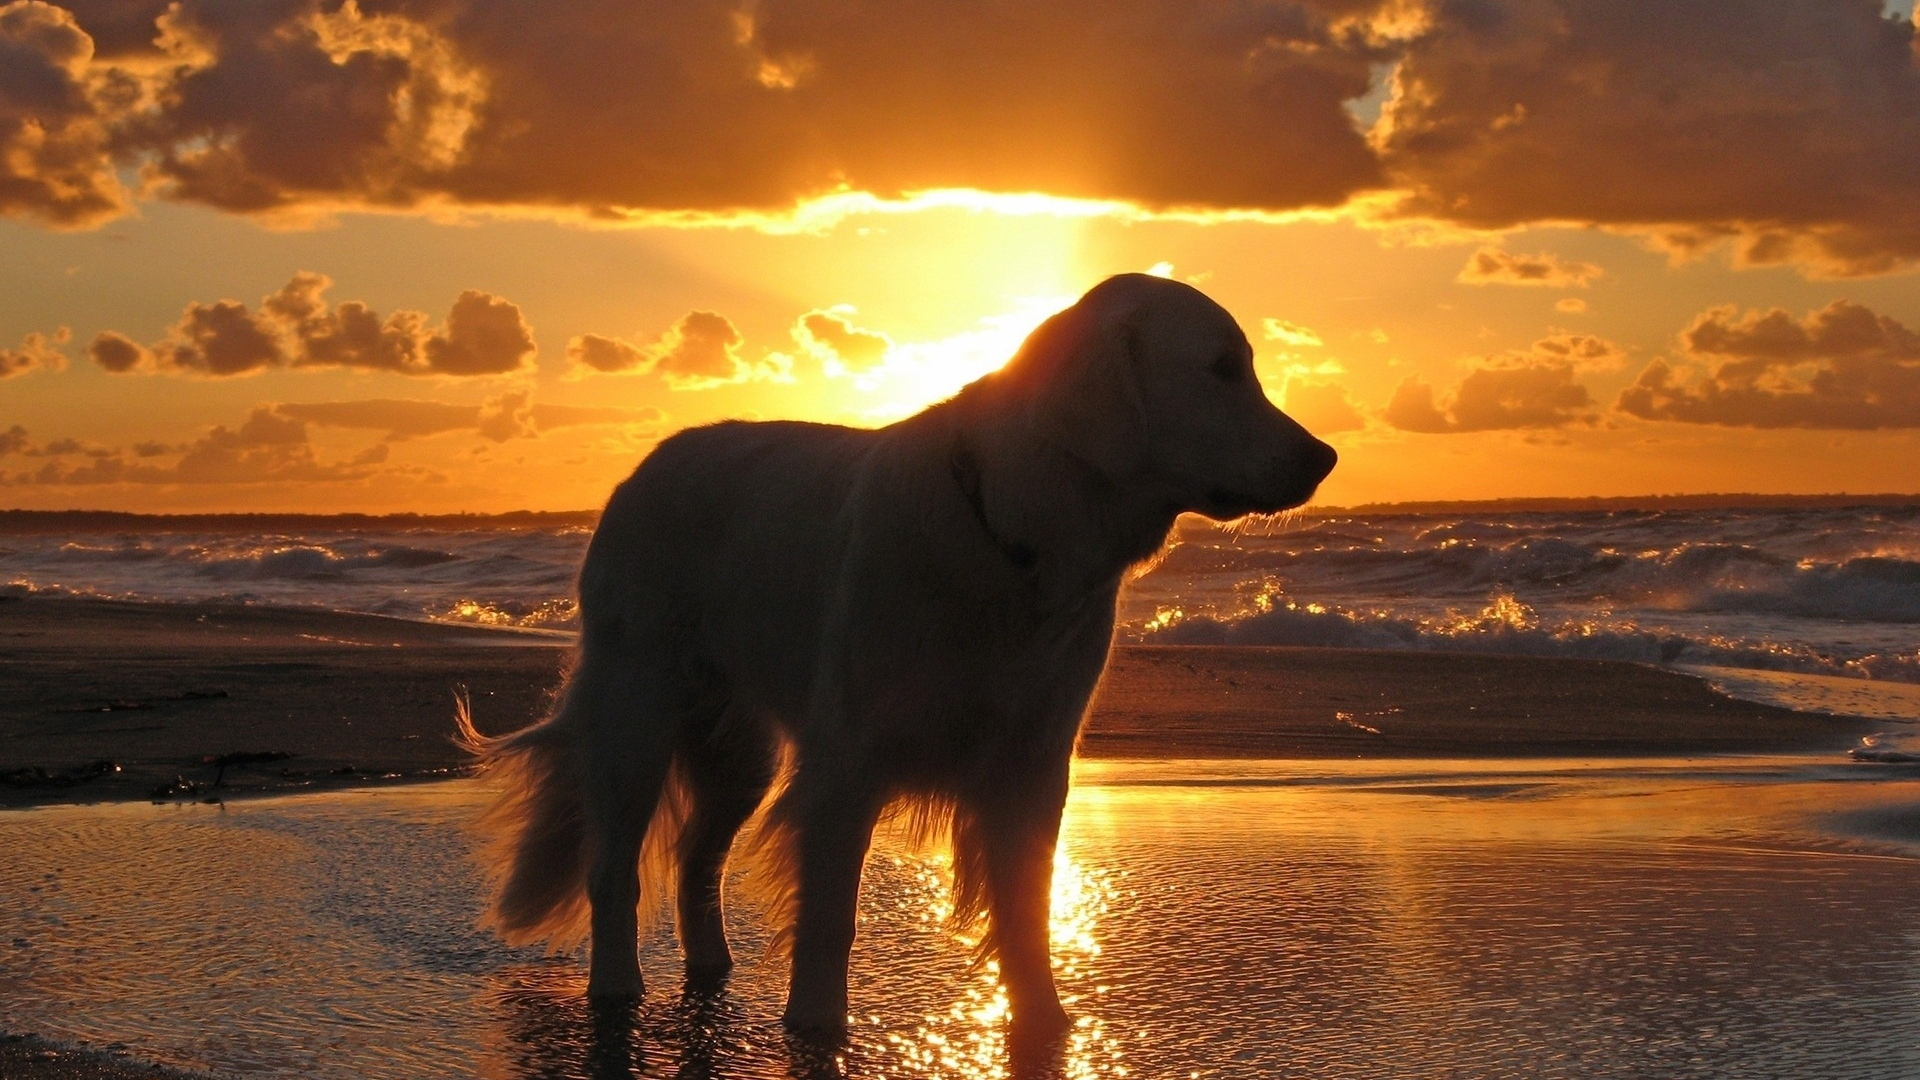 download wallpaper 1920x1080 dog, sunset, beach, sky, sea, shadow